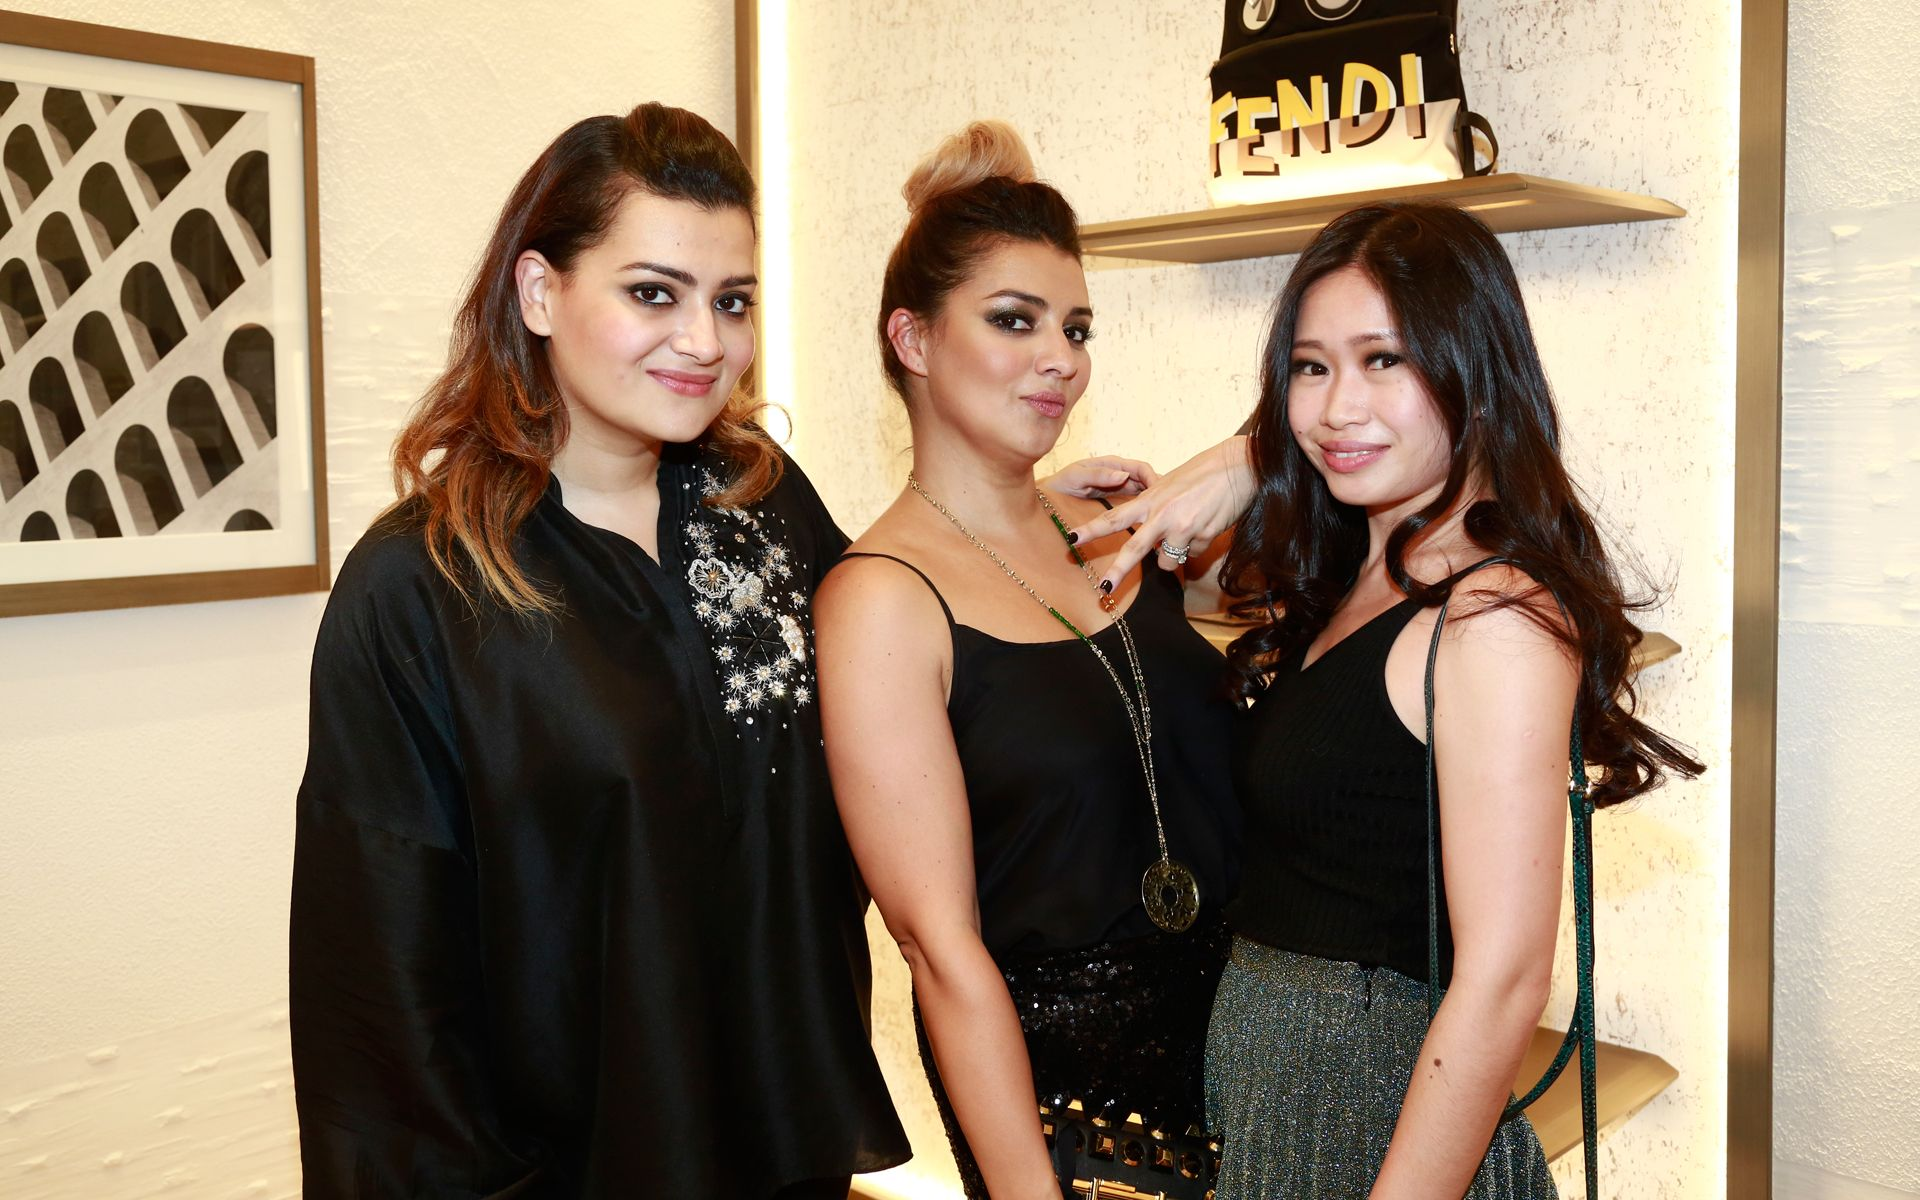 Zena Khan, Leila Khan and Lim May Shen